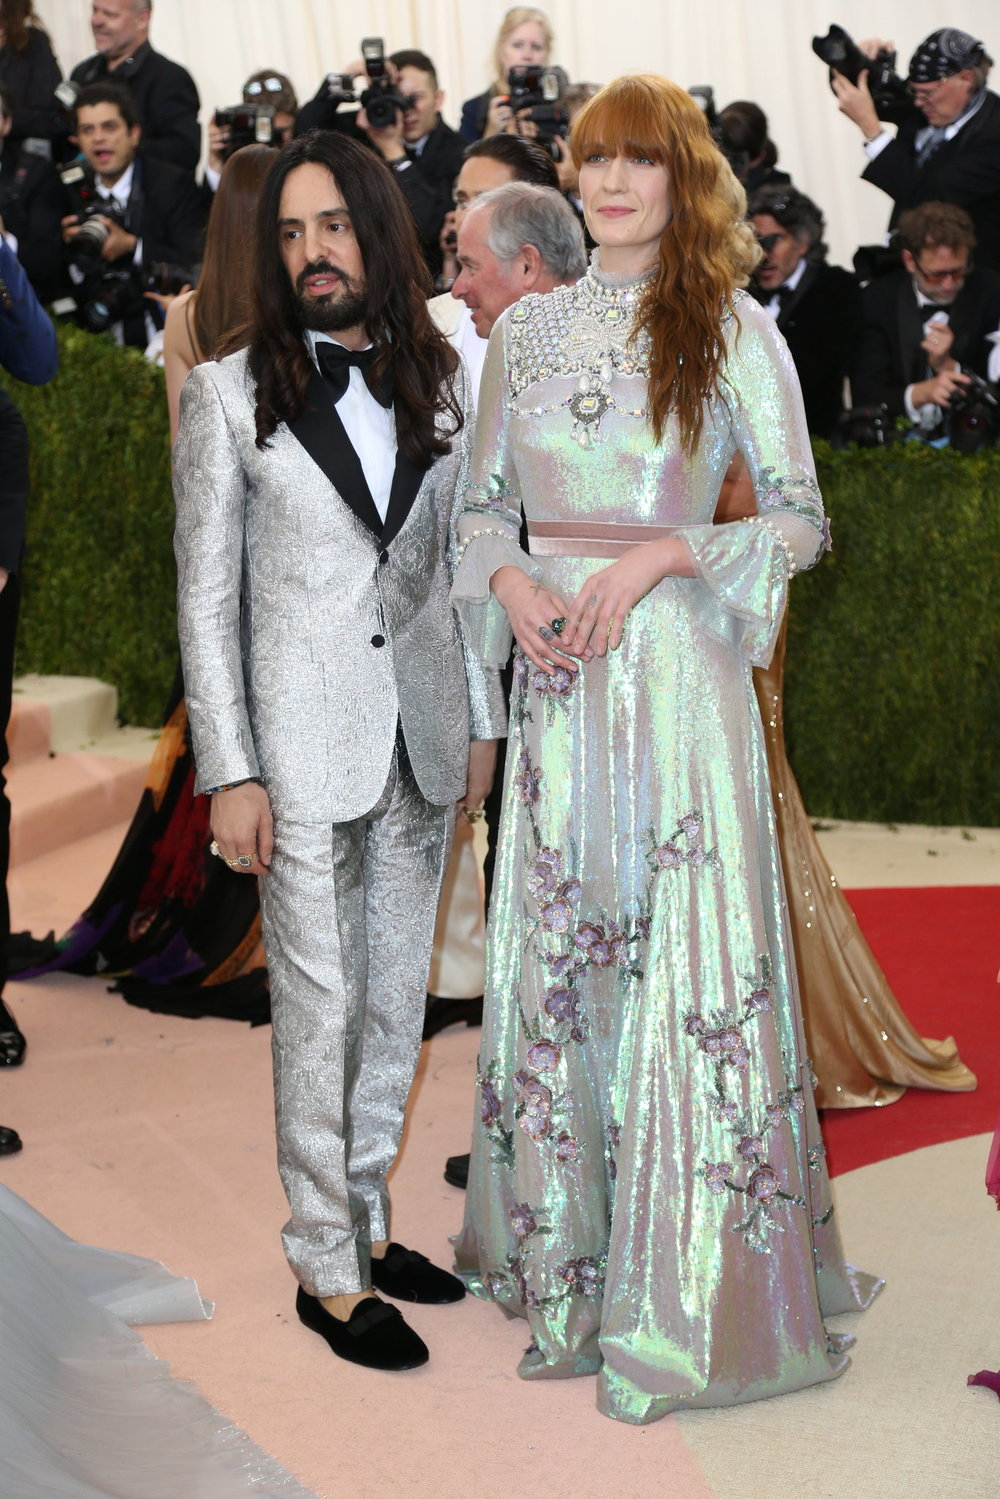 Alessandro Michele and Florence Welch in Custom Gucci